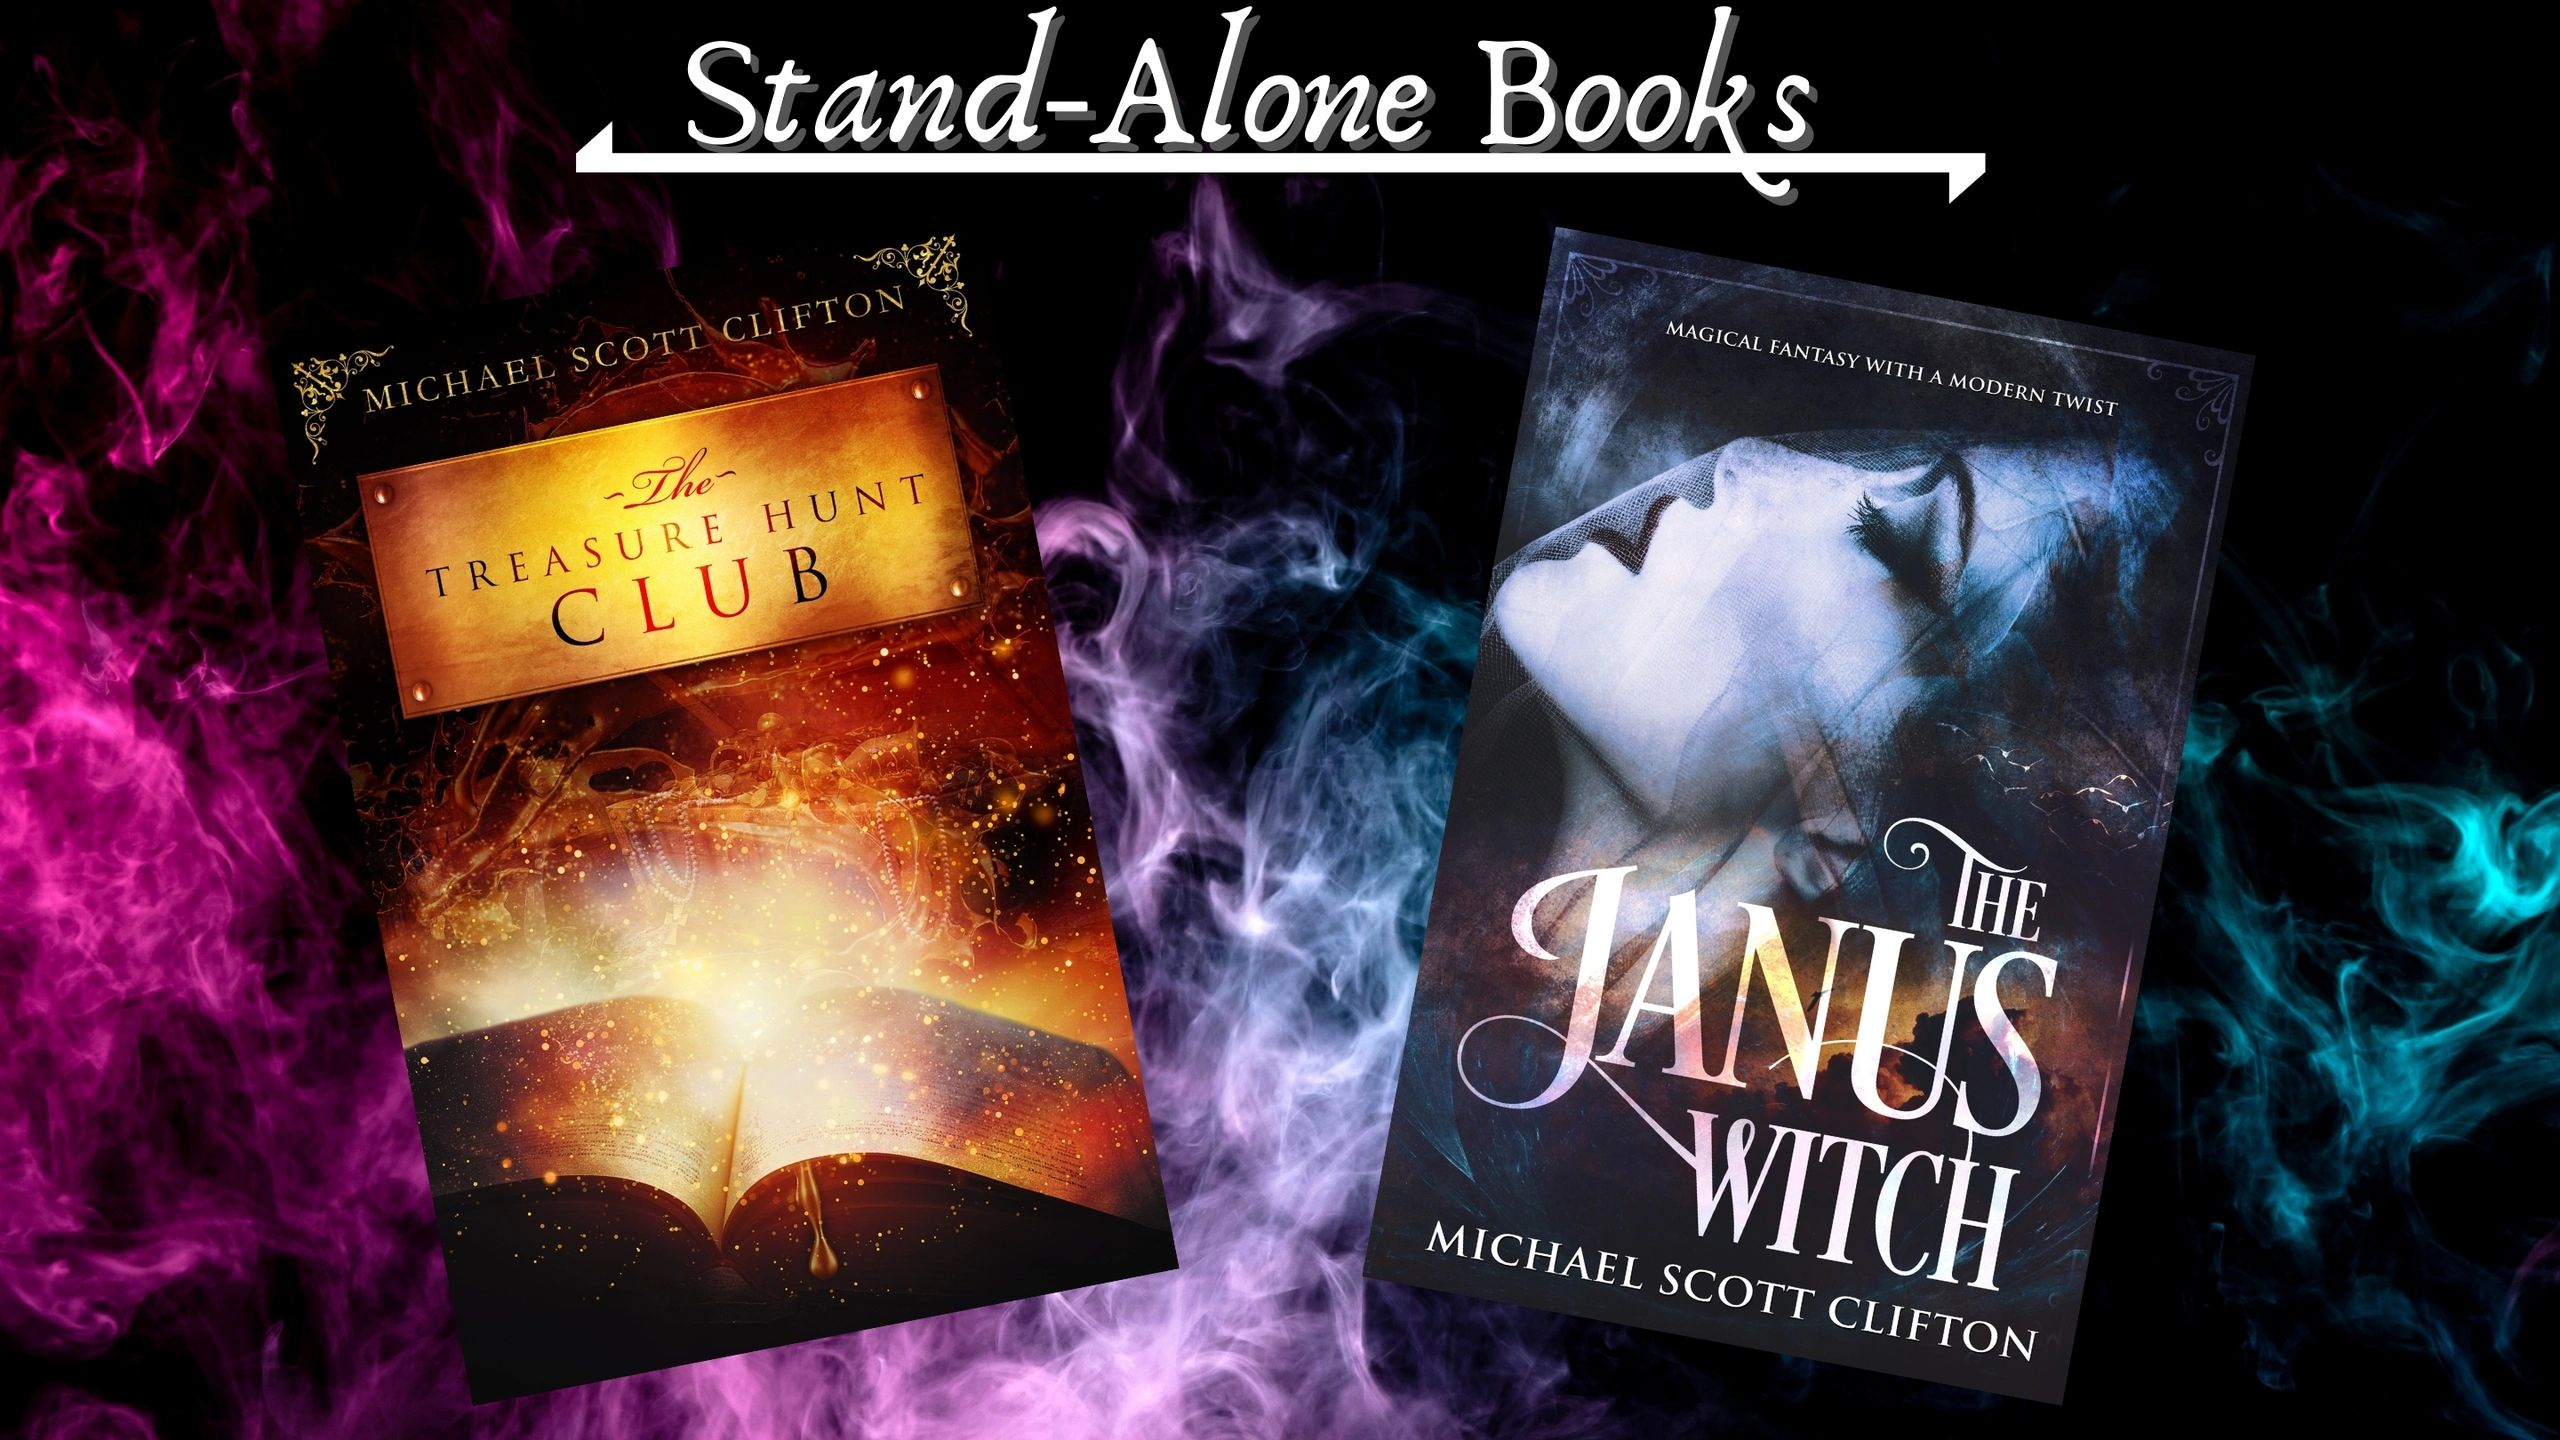 Stand-Alone Books by Author Michael Scott Clifton